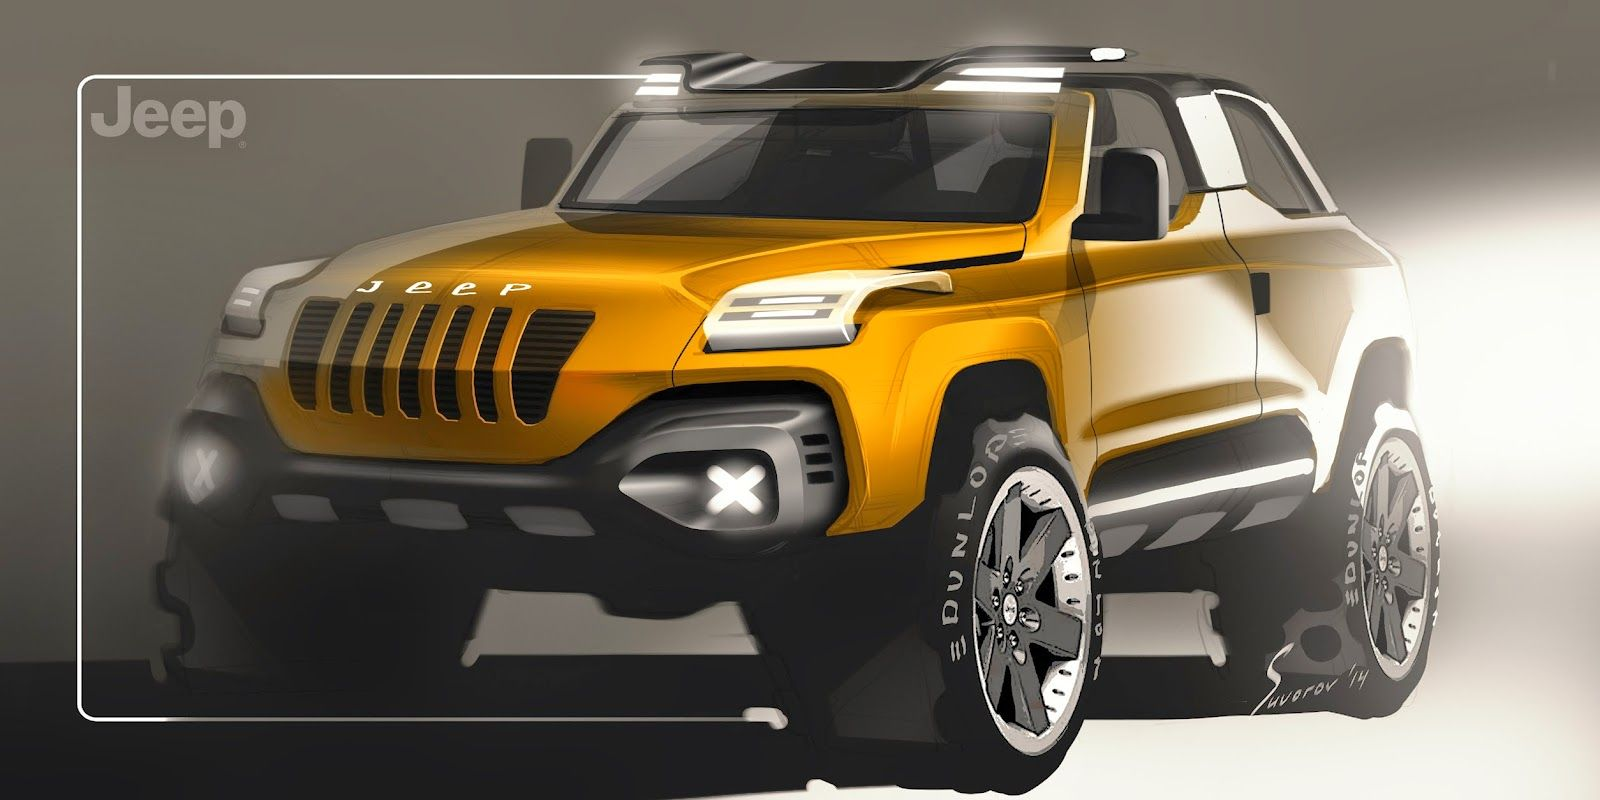 Jeep Concept Design Sketch By Aleksander Suvorov Jeep Concept